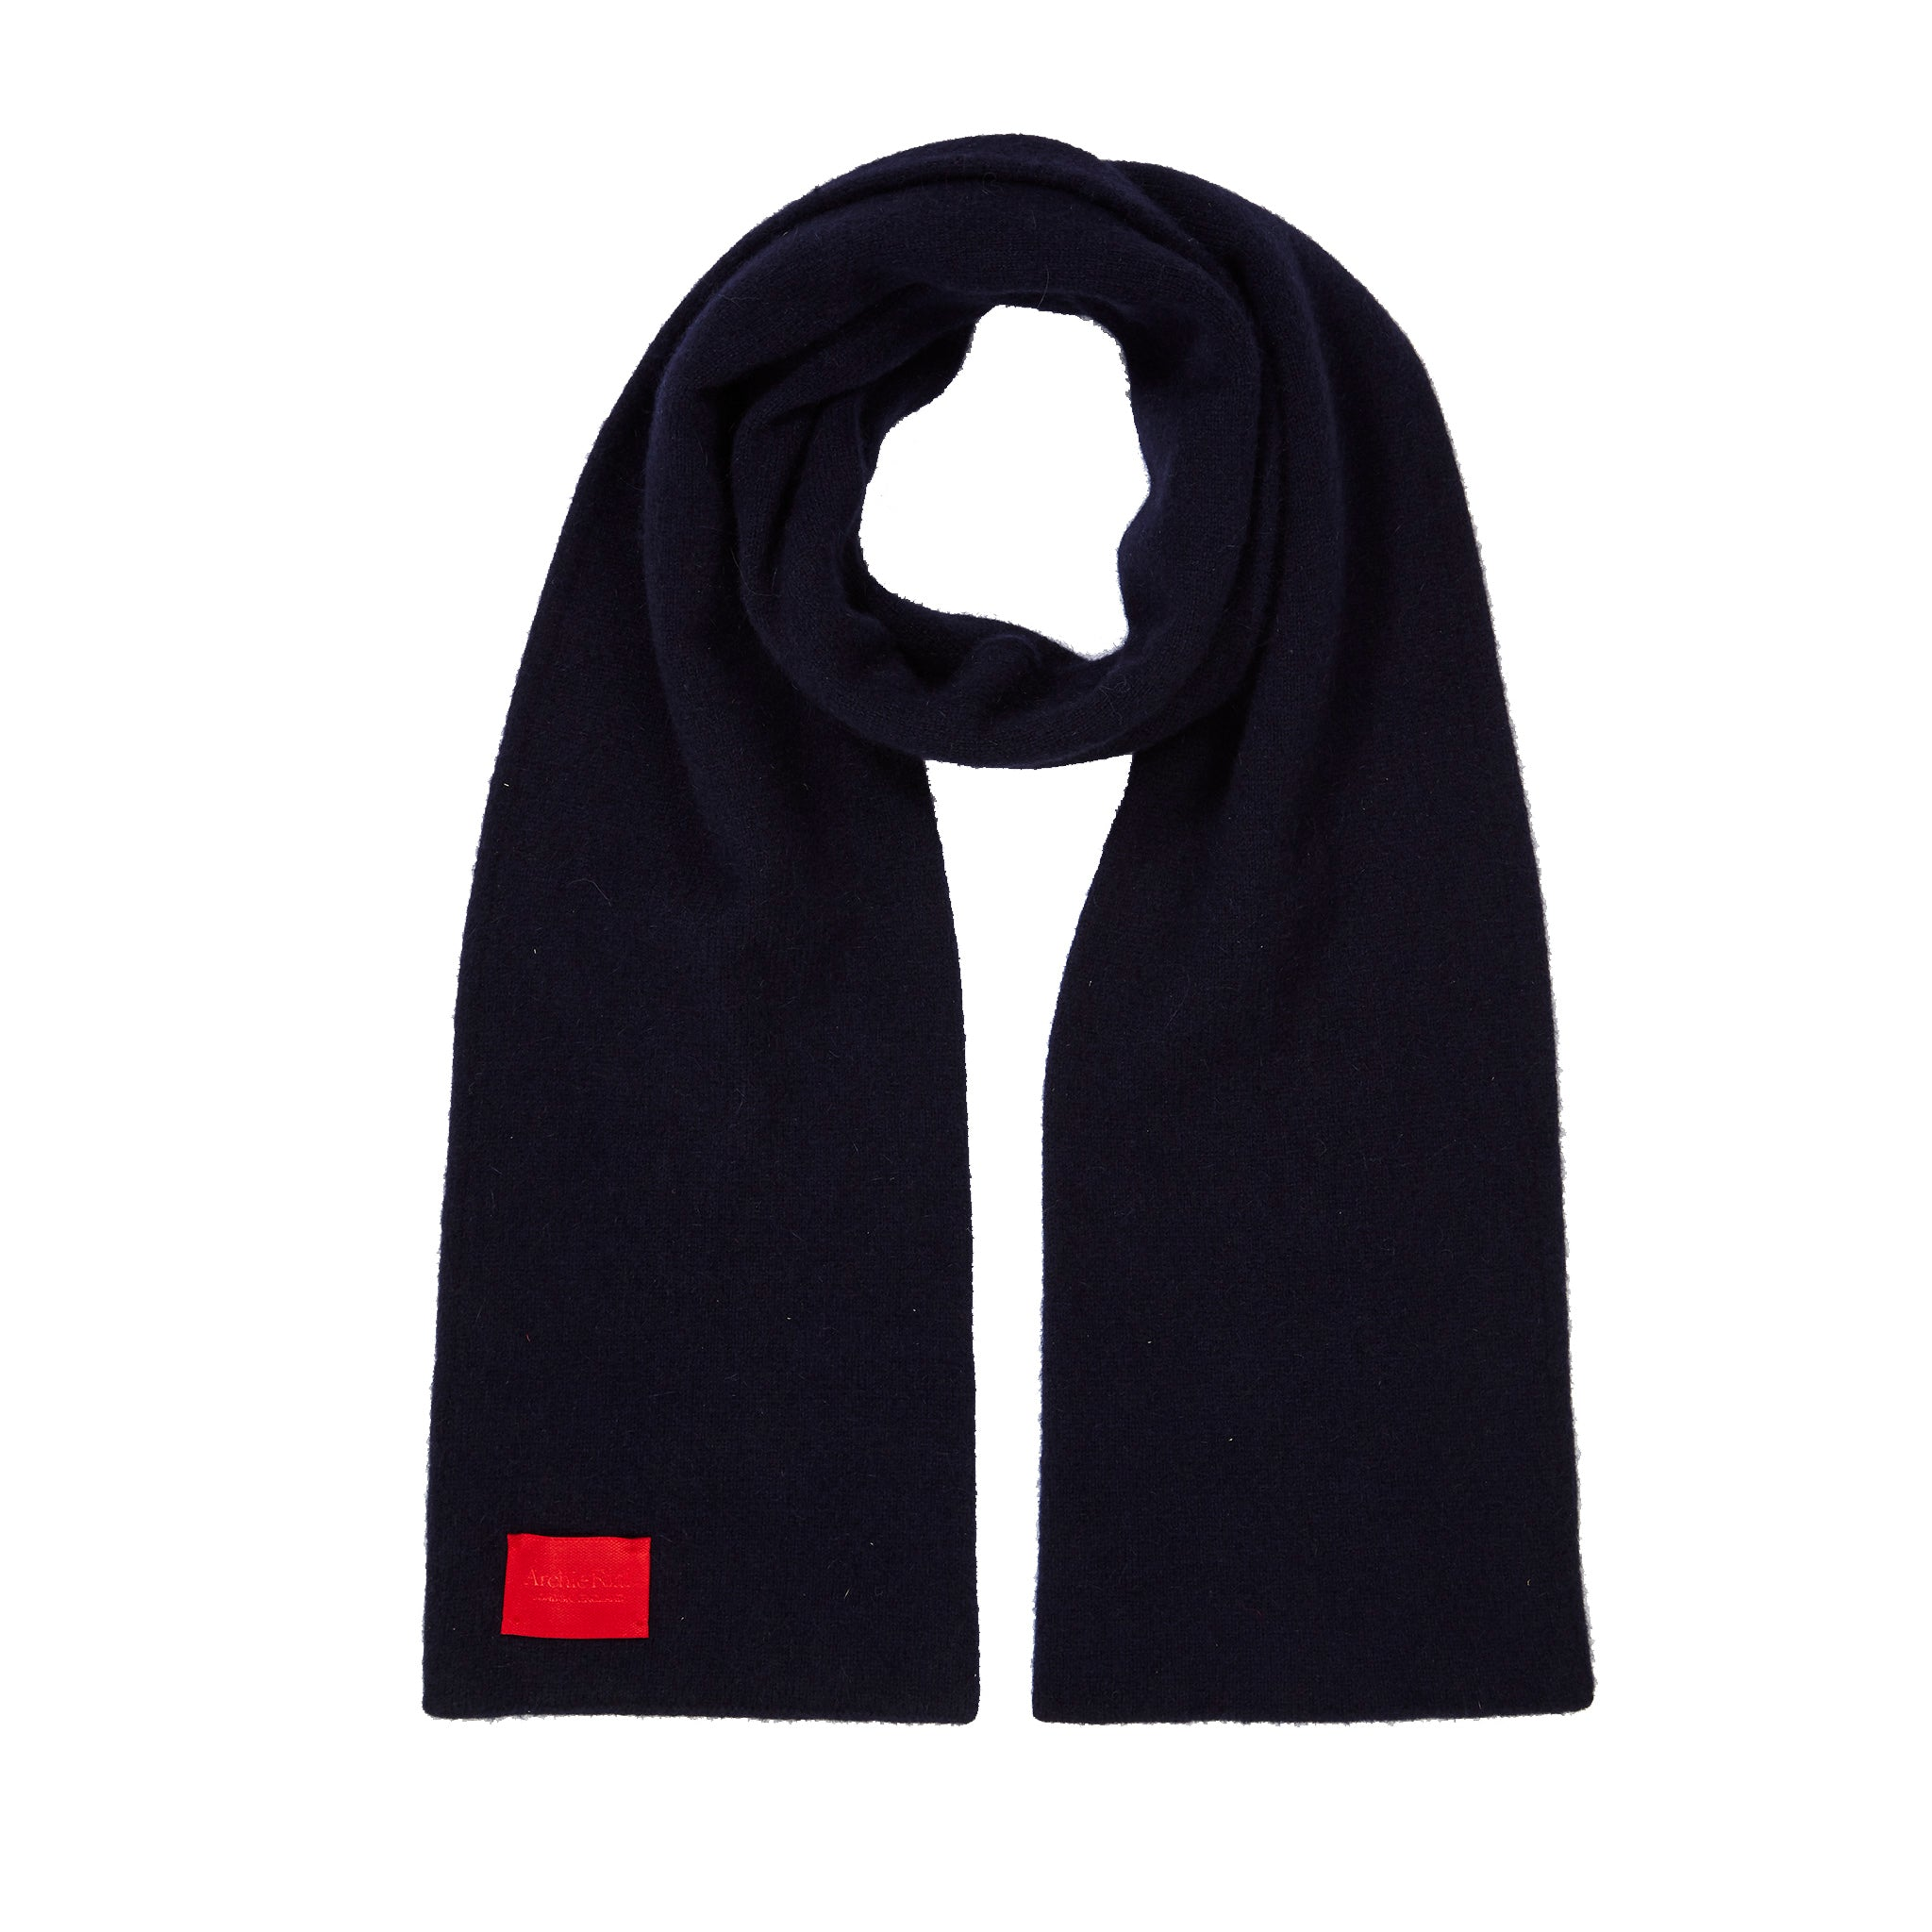 Archie Foal Unisex Albin Supersoft Merino/Angora Scarf in Navy